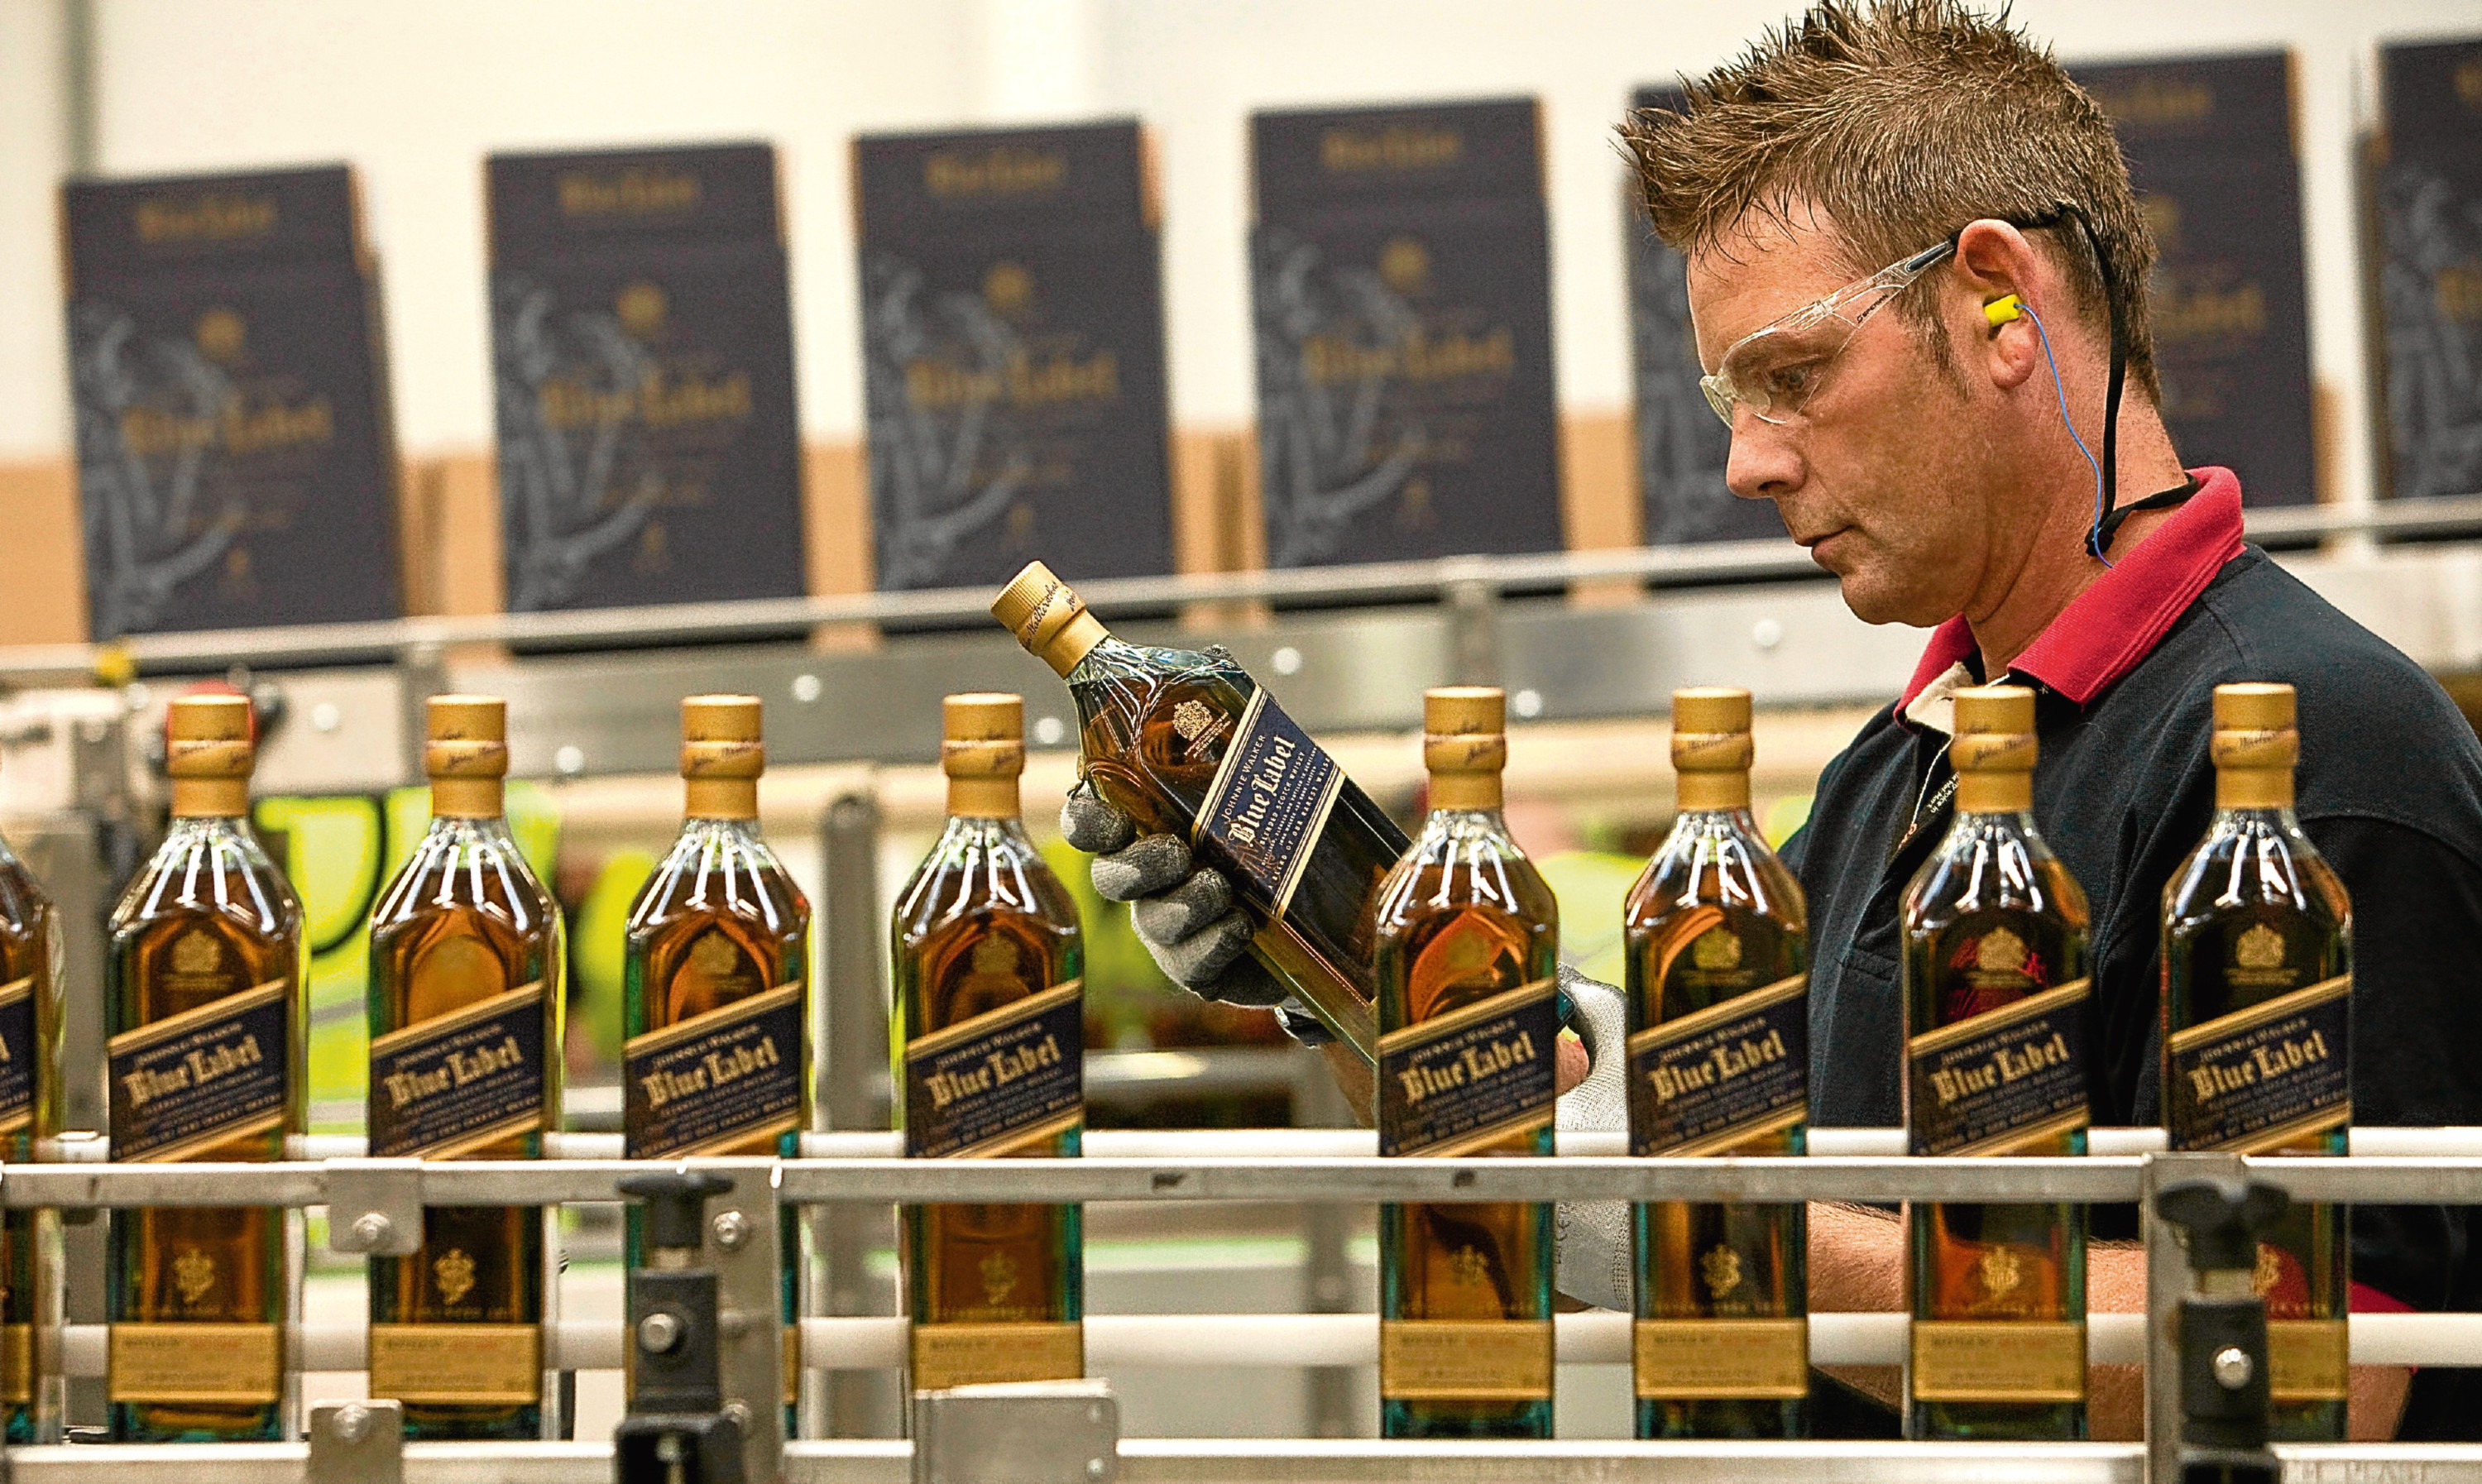 An employee checks a bottle of Johnnie Walker Blue Label whisky on the production line at Diageo's bottling plant in Leven.